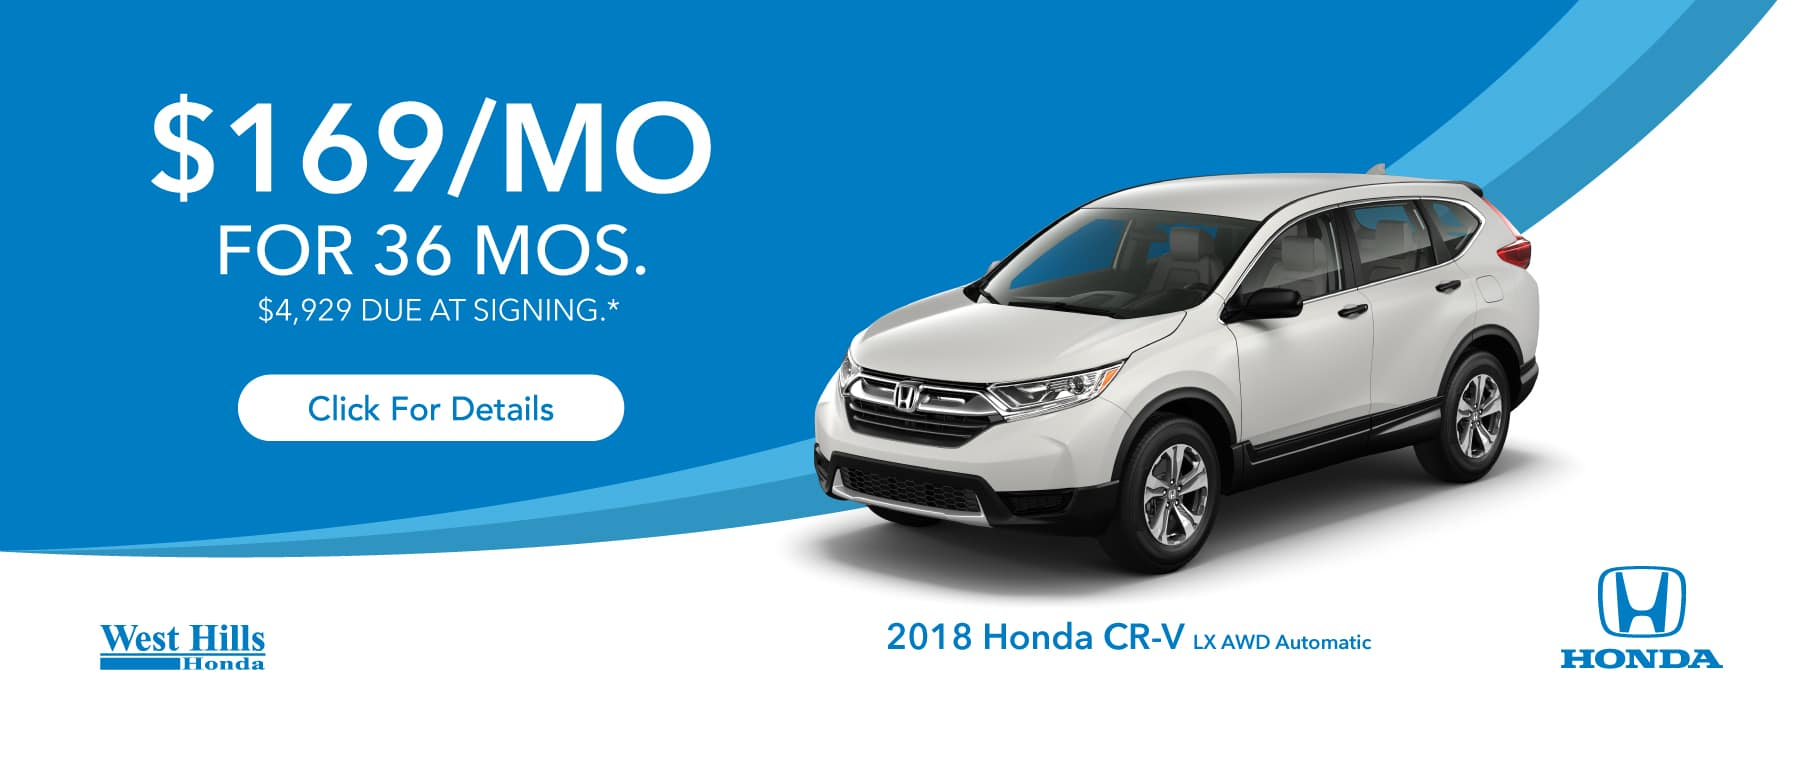 2018 Honda CR-V LX AWD Automatic  $169/mo. for 36 mos. $4,929 due at signing*    *$169 per mo. for 36 months. Lease with $4,929 due at signing; includes a $595 acquisition fee on 2018 Honda CR-V LX AWD Automatic. Valid on VIN: 2HKRW6H35JH229057. MSRP is $26,645. No Security deposit required. Subject to credit approval. 36 monthly payments required. Not all lessees will qualify for lowest payment through participating lender. Residency restrictions apply. Lessee responsible for maintenance, excessive wear/tear and mileage over 12,000 miles per year at $0.15/mile. Option to purchase at lease end. Excludes state and local taxes, tags, registration and title, insurance and dealer charges. A negotiable dealer documentary service fee of up to $150 may be added to the sale price or capitalized cost. Offer expires 1/31/2019.